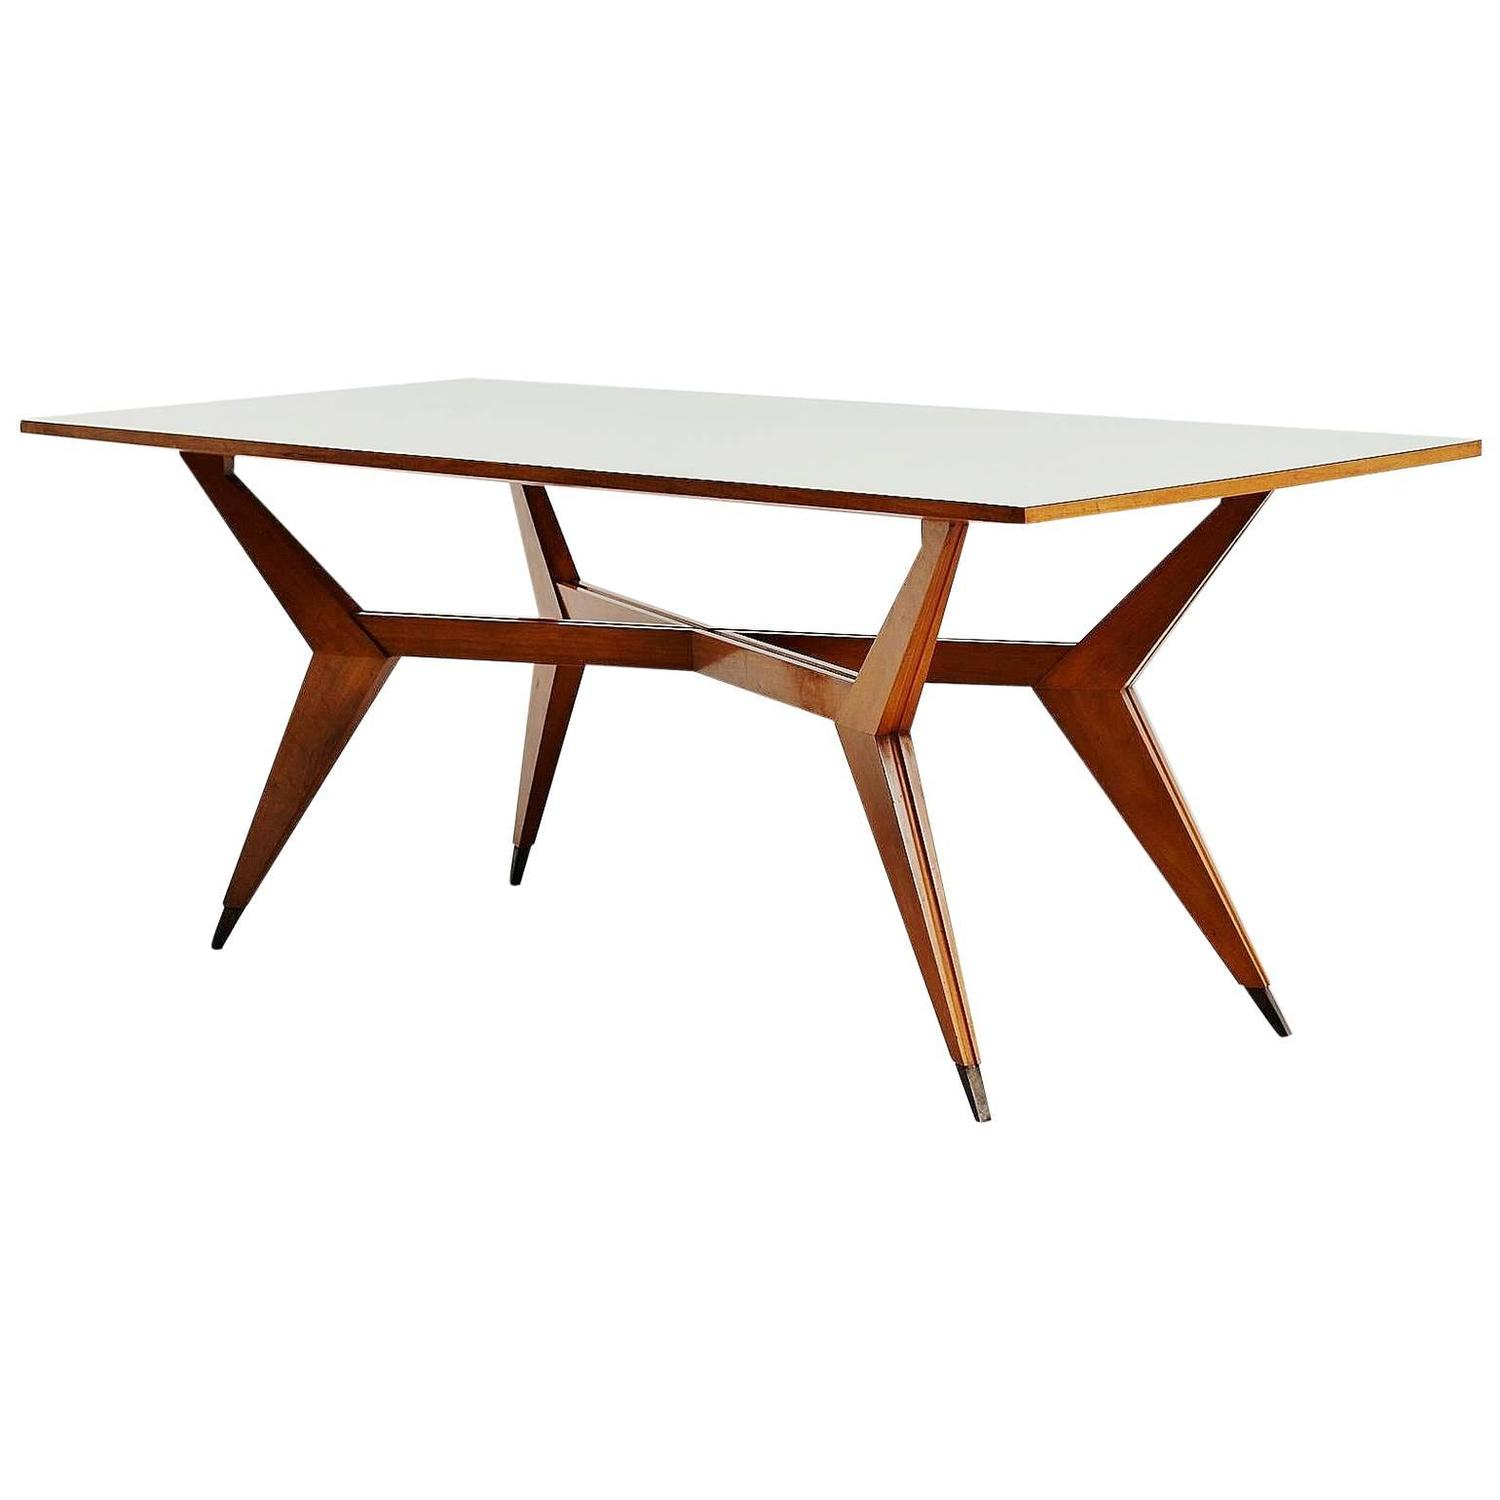 pre tables and chairs home goods dining room ico parisi table mim production 1950 for sale